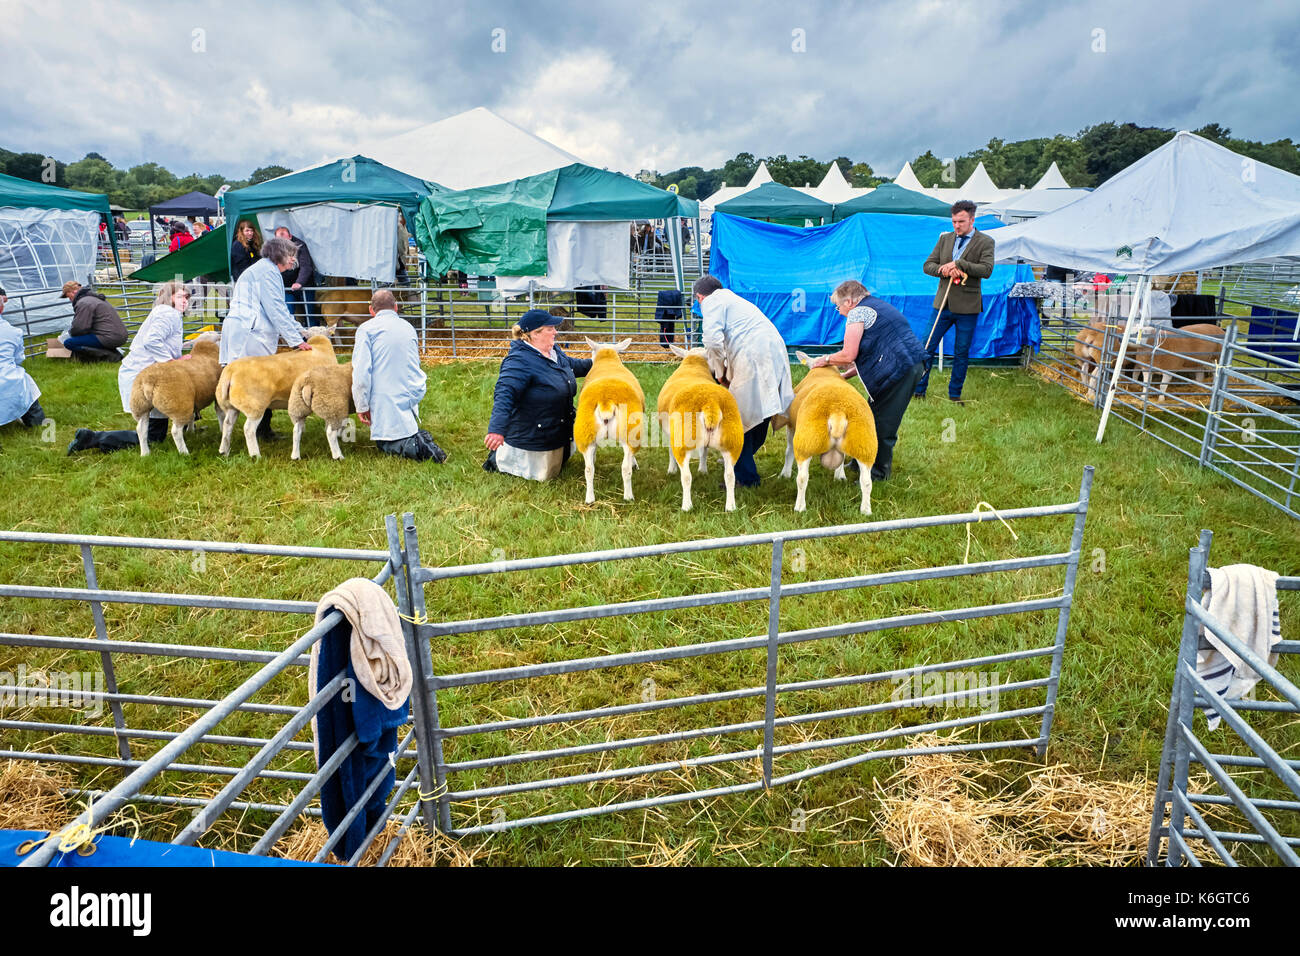 Sheep being judged at the Nantwich show - Stock Image